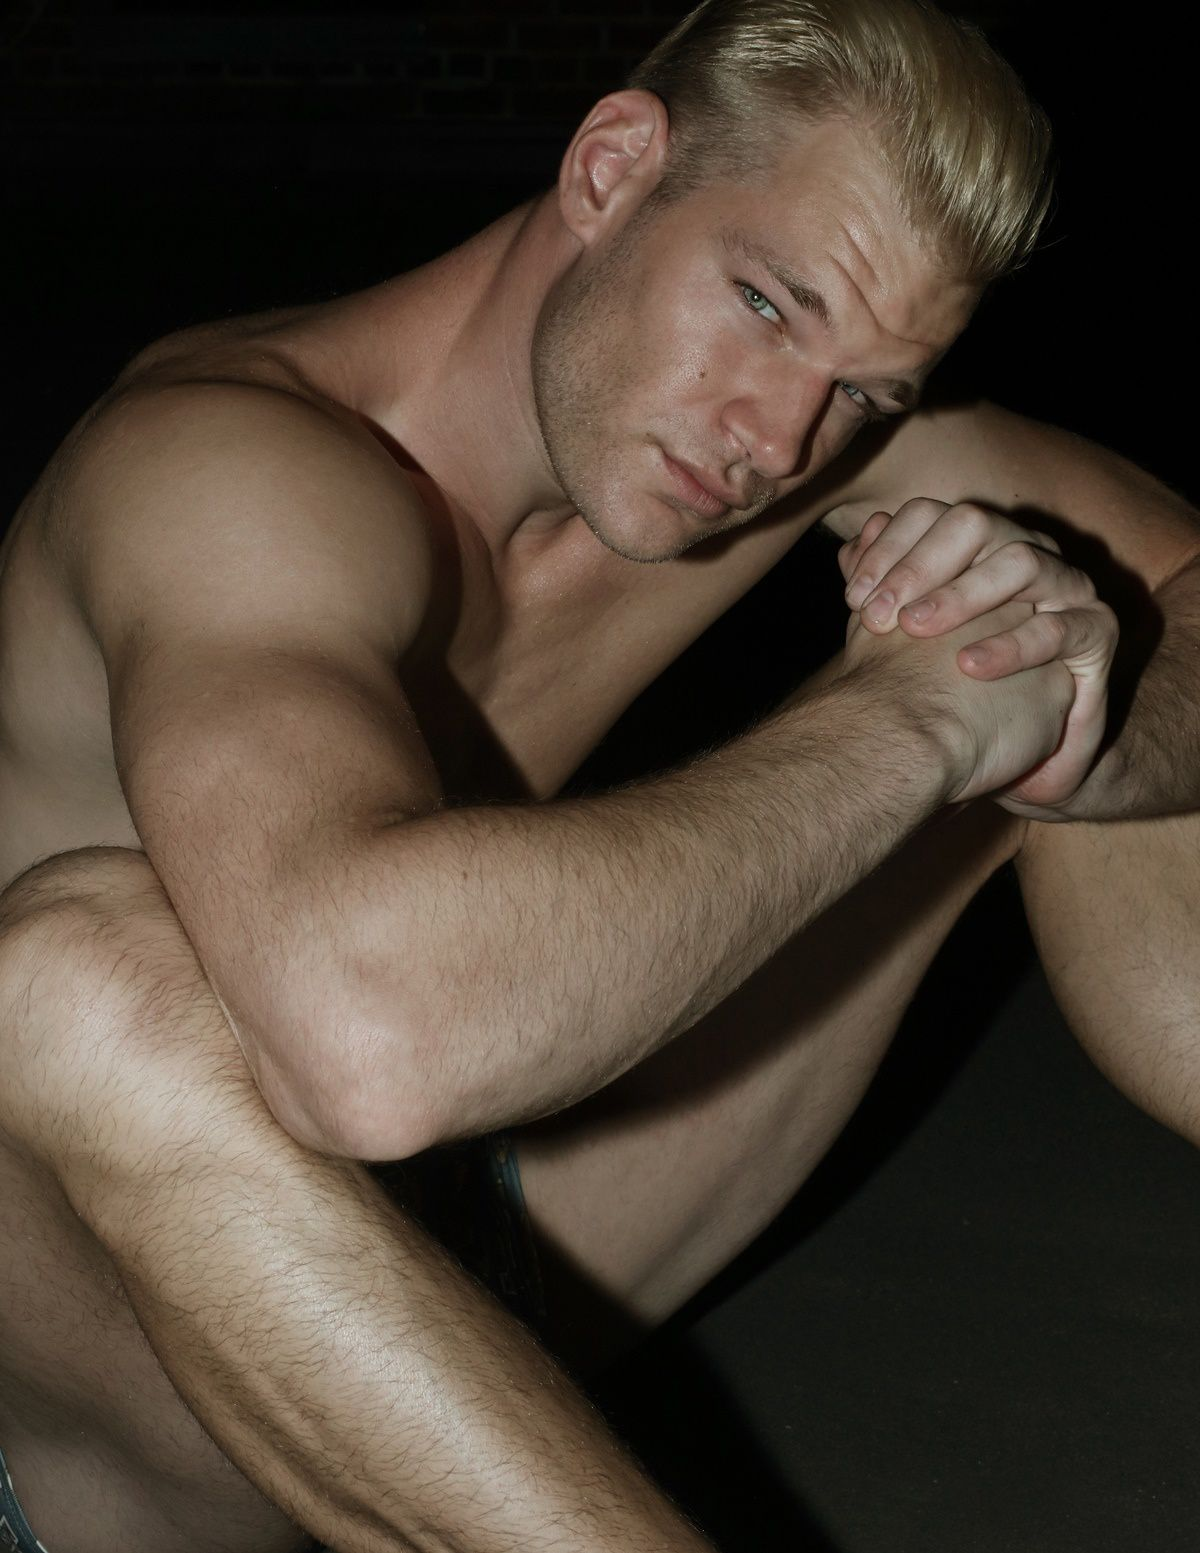 Remington Jay par  Marco Ovando - LoveSexo